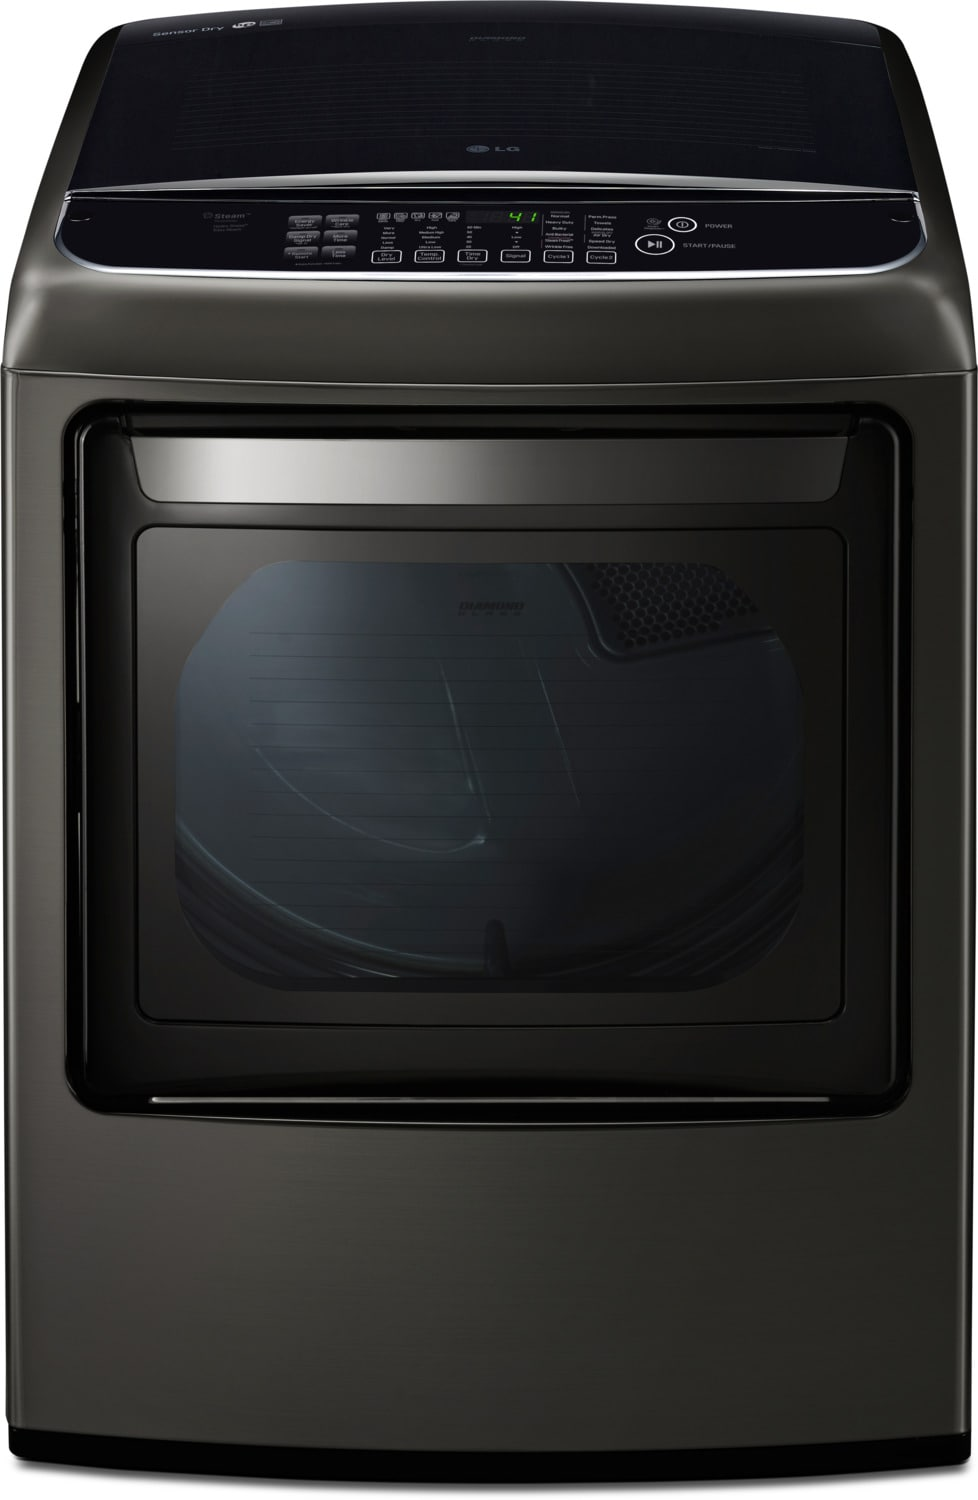 Washers and Dryers - LG 7.3 Cu. Ft. Electric Steam Dryer with EasyLoad™ – DLEY1901KE